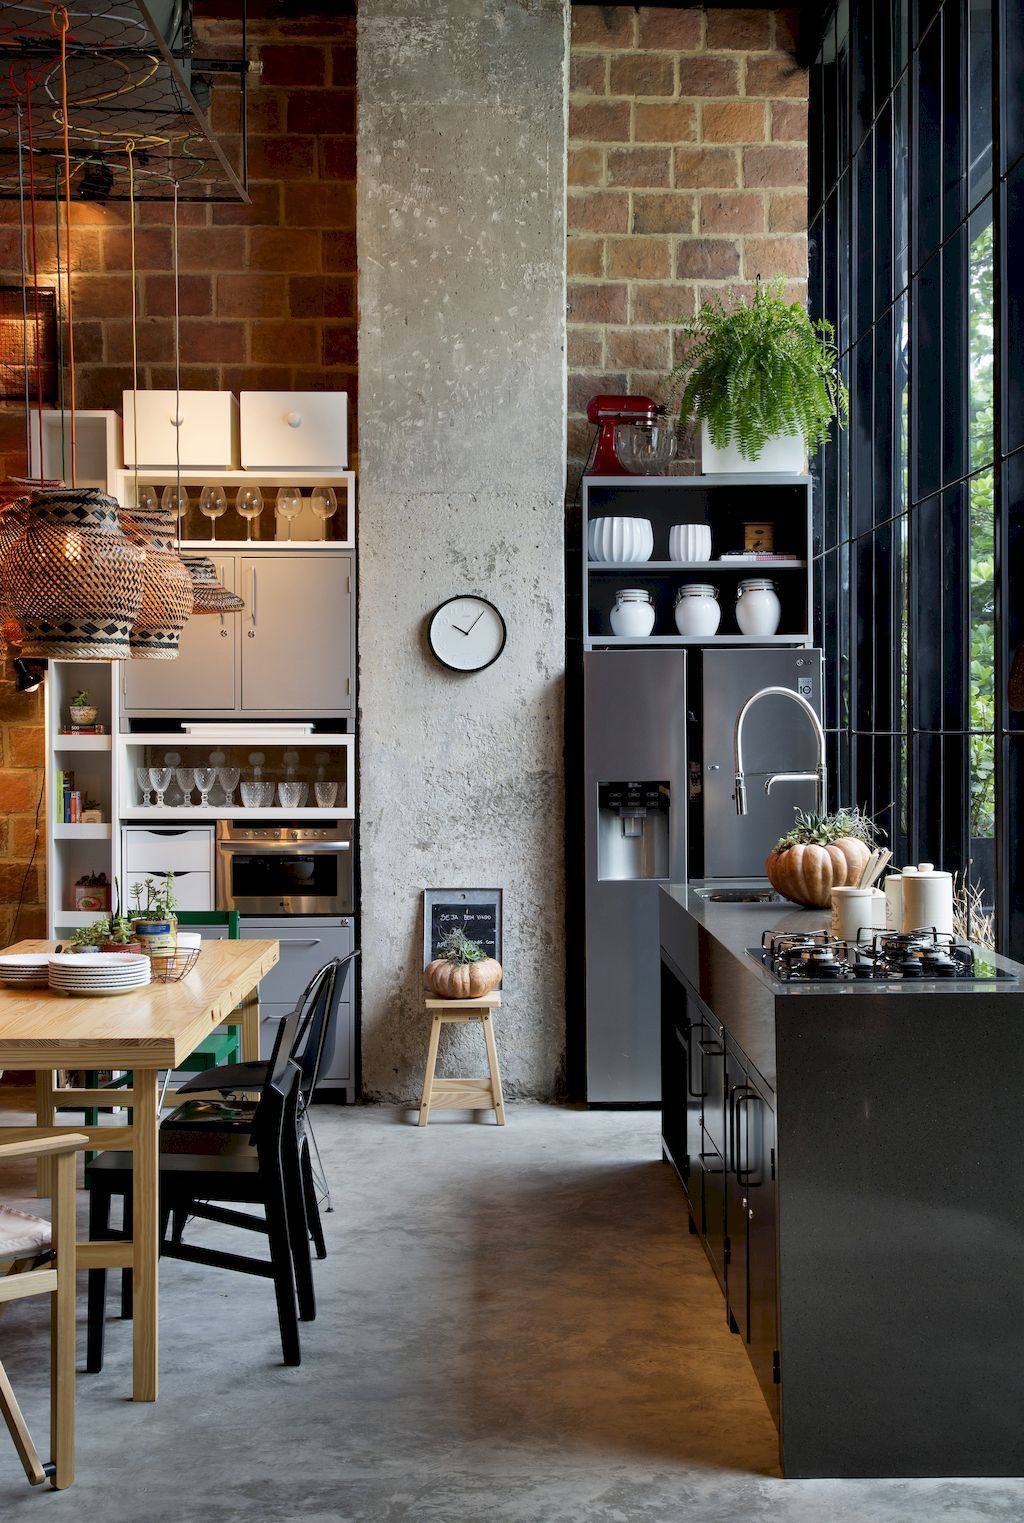 Nice 60 Awesome Modern Kitchens Ideas Remodeling On A Budget Https Livingmarch Com 60 Awes Interior Design Kitchen Industrial Kitchen Design Kitchen Interior